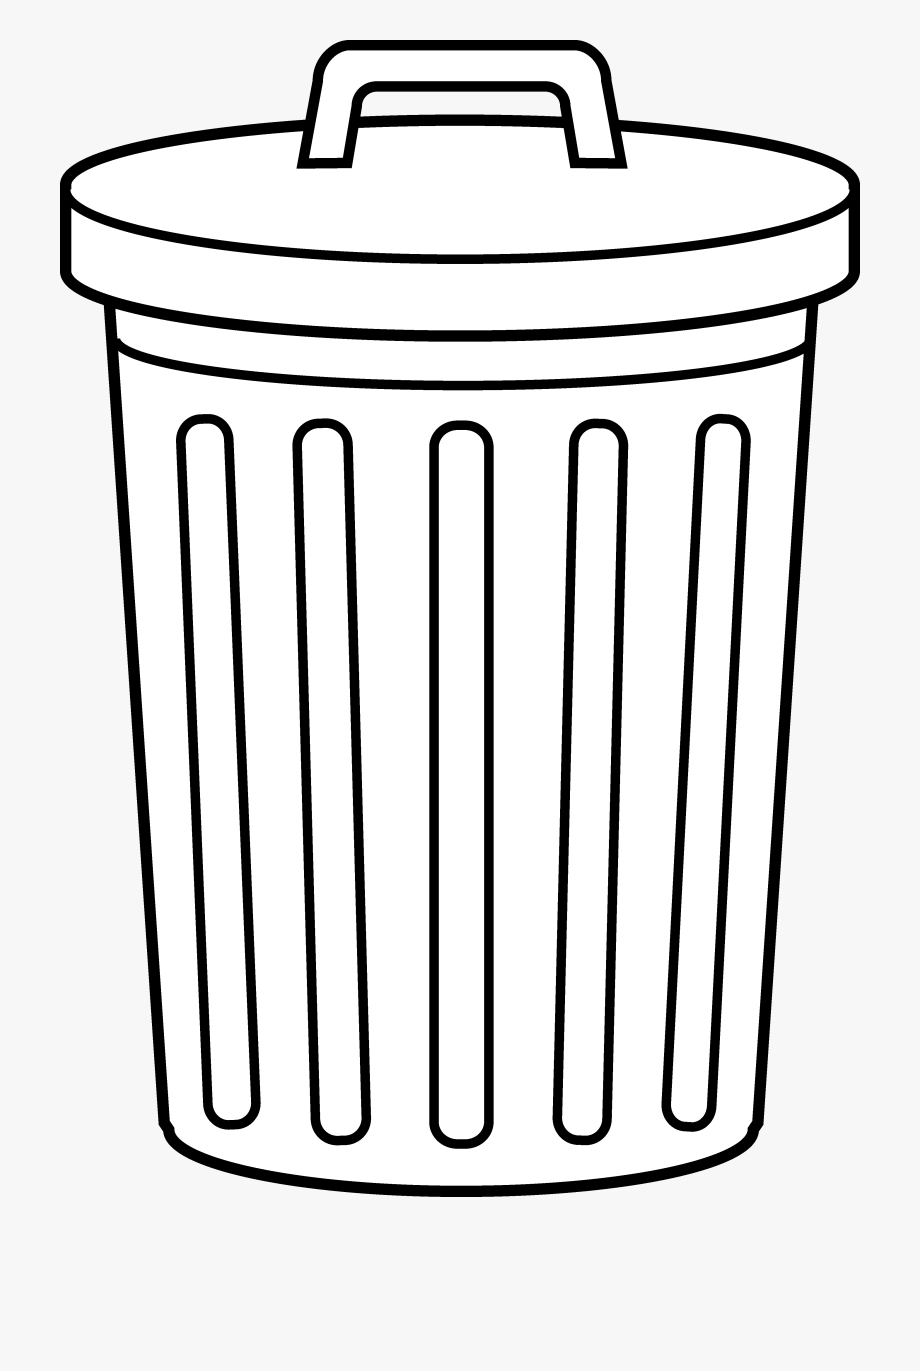 Pile of cans clipart black and white image free Awesome Free Pictures Of Trash Cans, Download Free - Trash ... image free